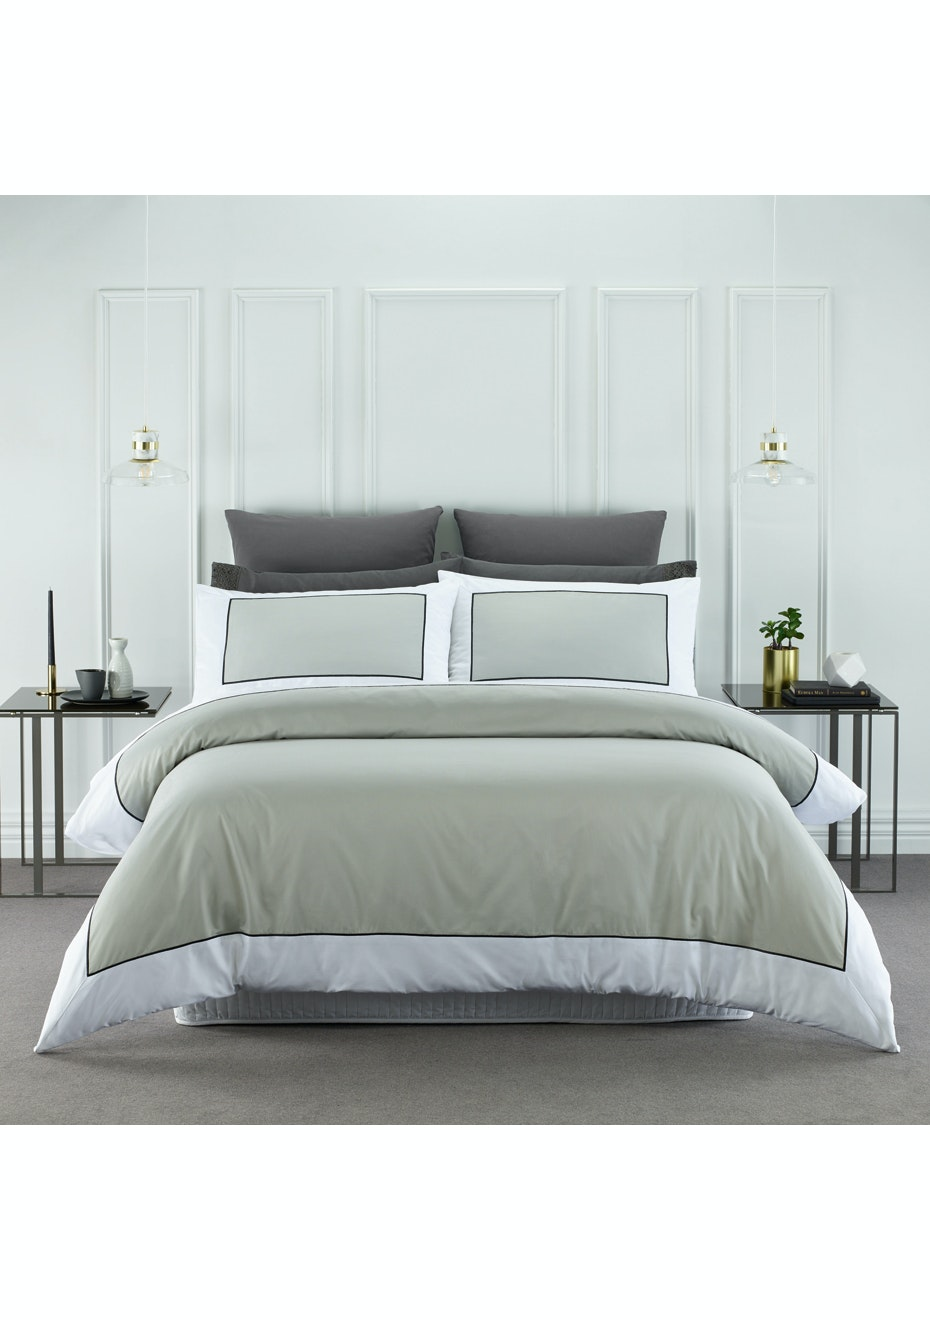 Style & Co 1000 Thread count Egyptian Cotton Hotel Collection Ascot Quilt Cover sets Super King Silver